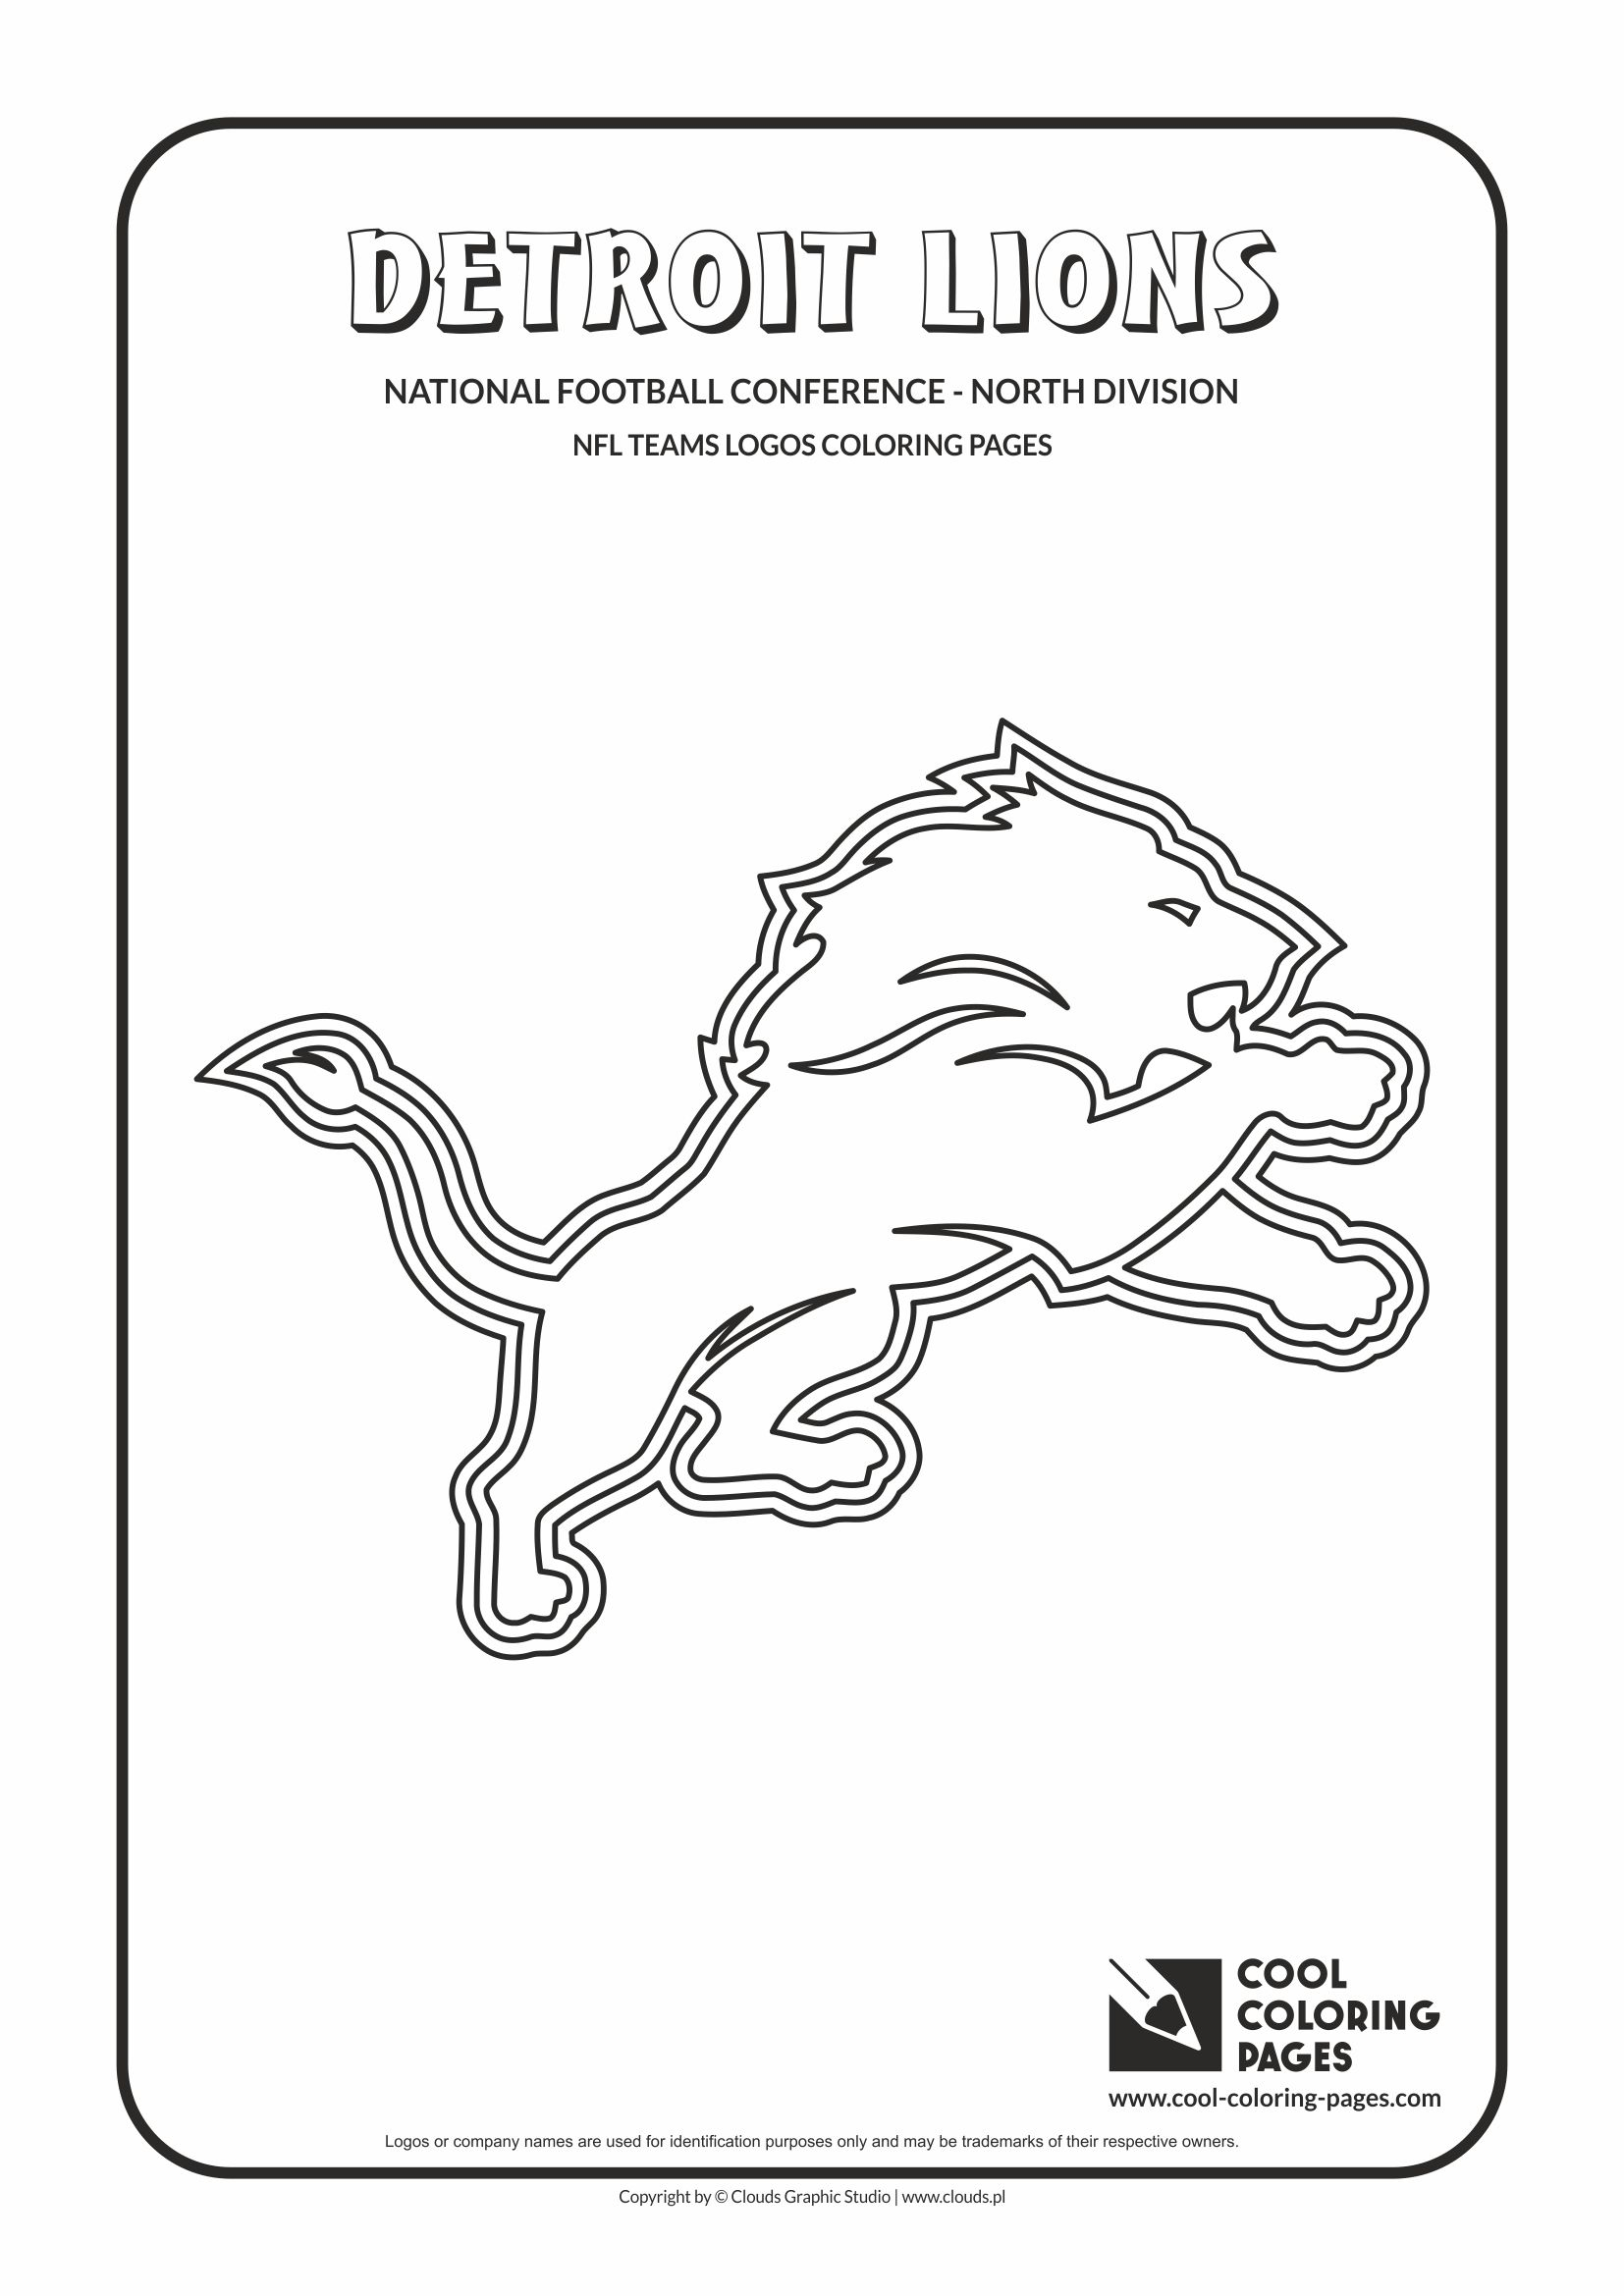 nfl teams logos coloring pages | cool coloring pages - Steelers Coloring Pages Printable